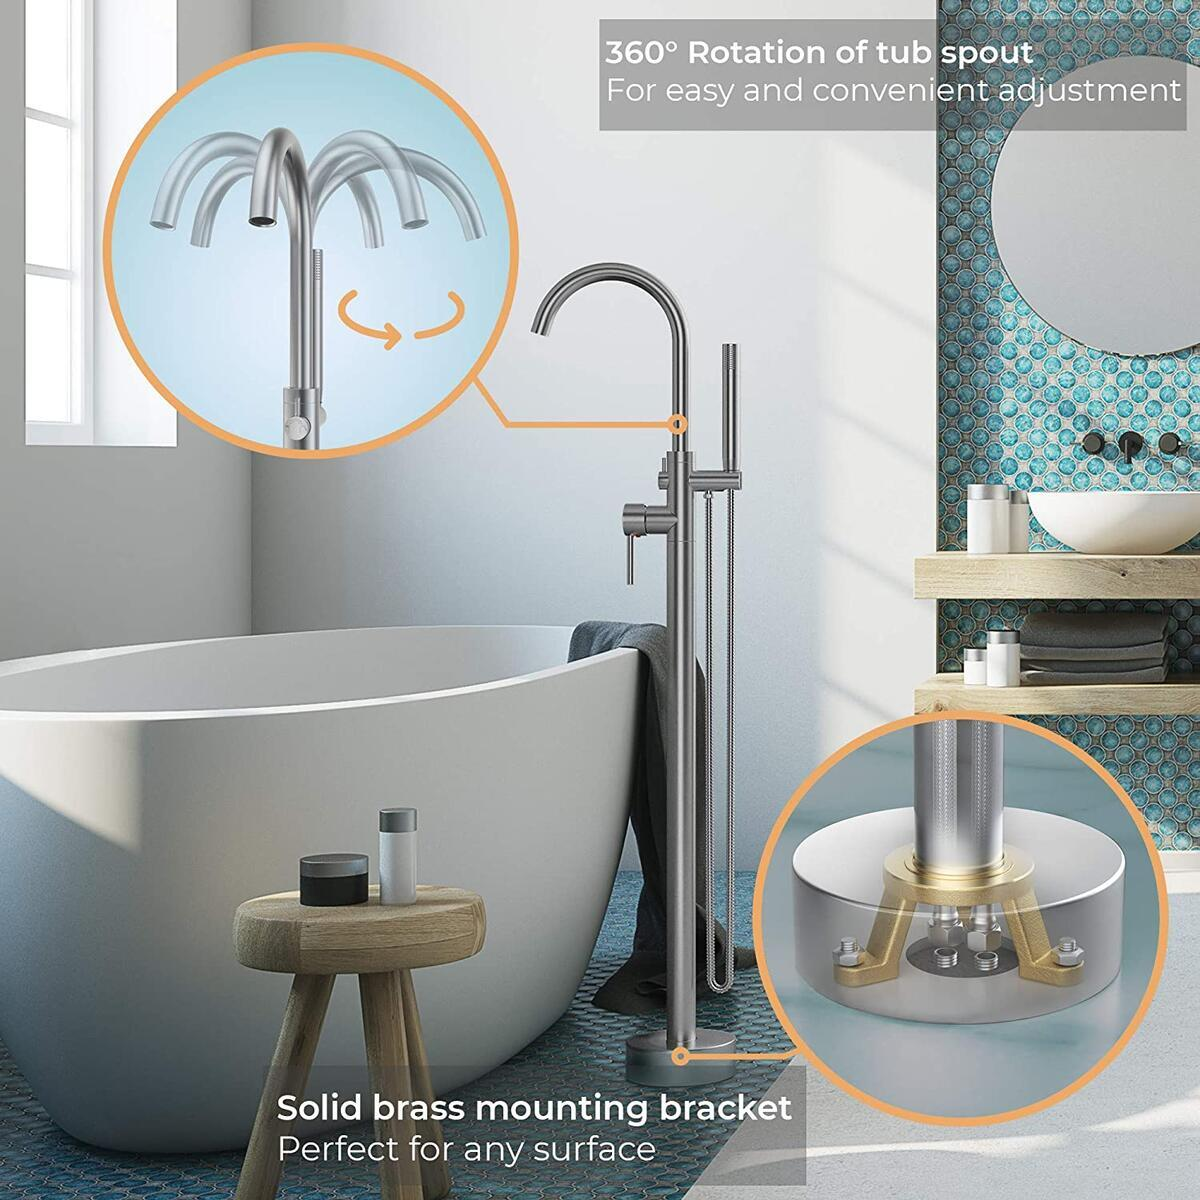 marbs home freestanding bathtub faucet with 360 spout brushed nickel freestanding tub filler brass bath tub faucet with hand shower high 6gpm flow